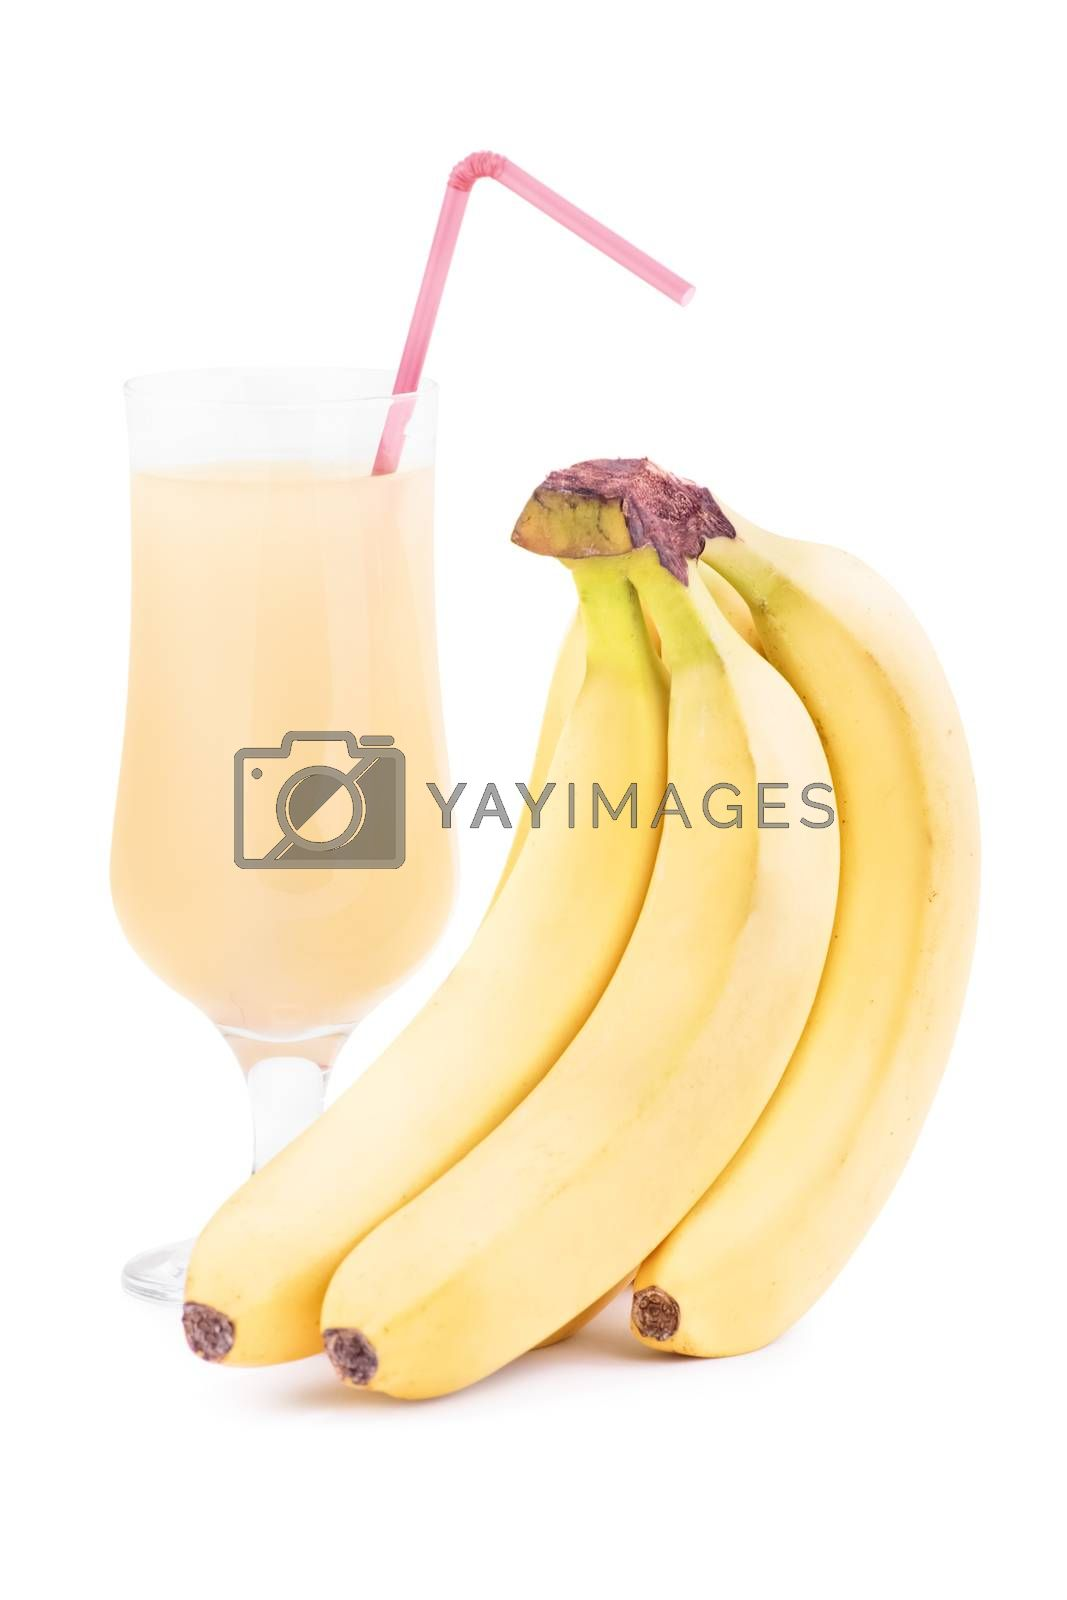 Bananas with a smoothie glass, isolated on white background.